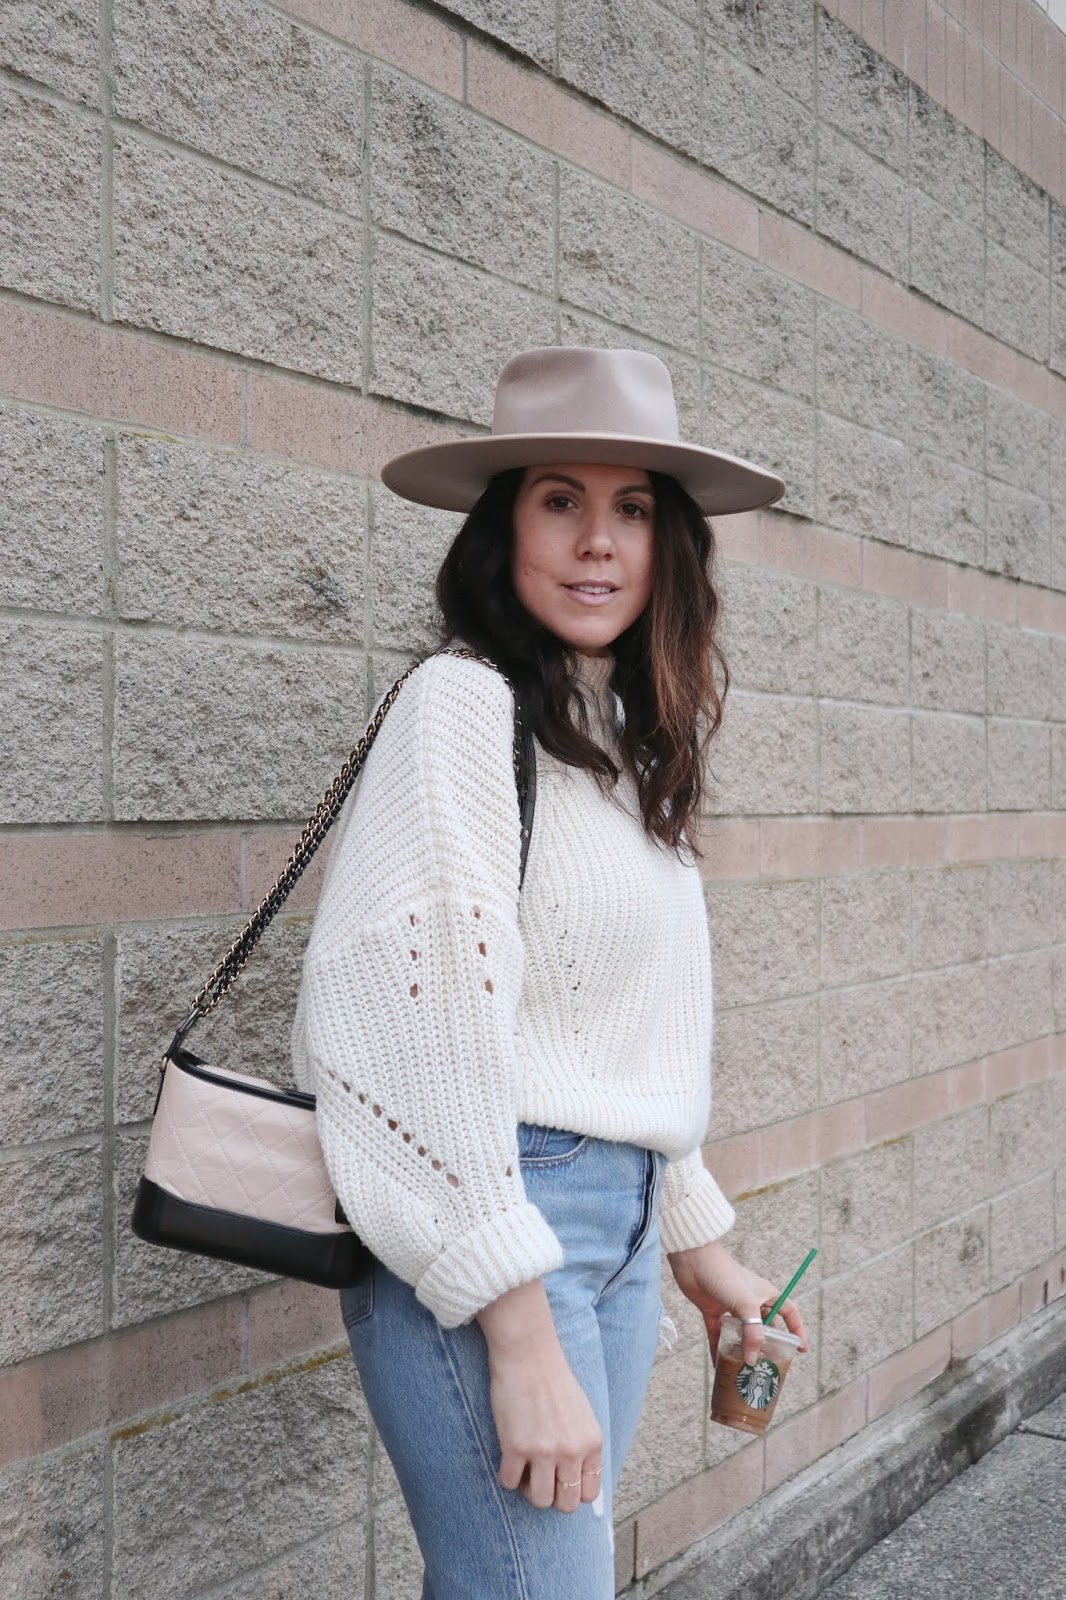 lack of color rancher hat vancouver fashion blogger cute beige outfit